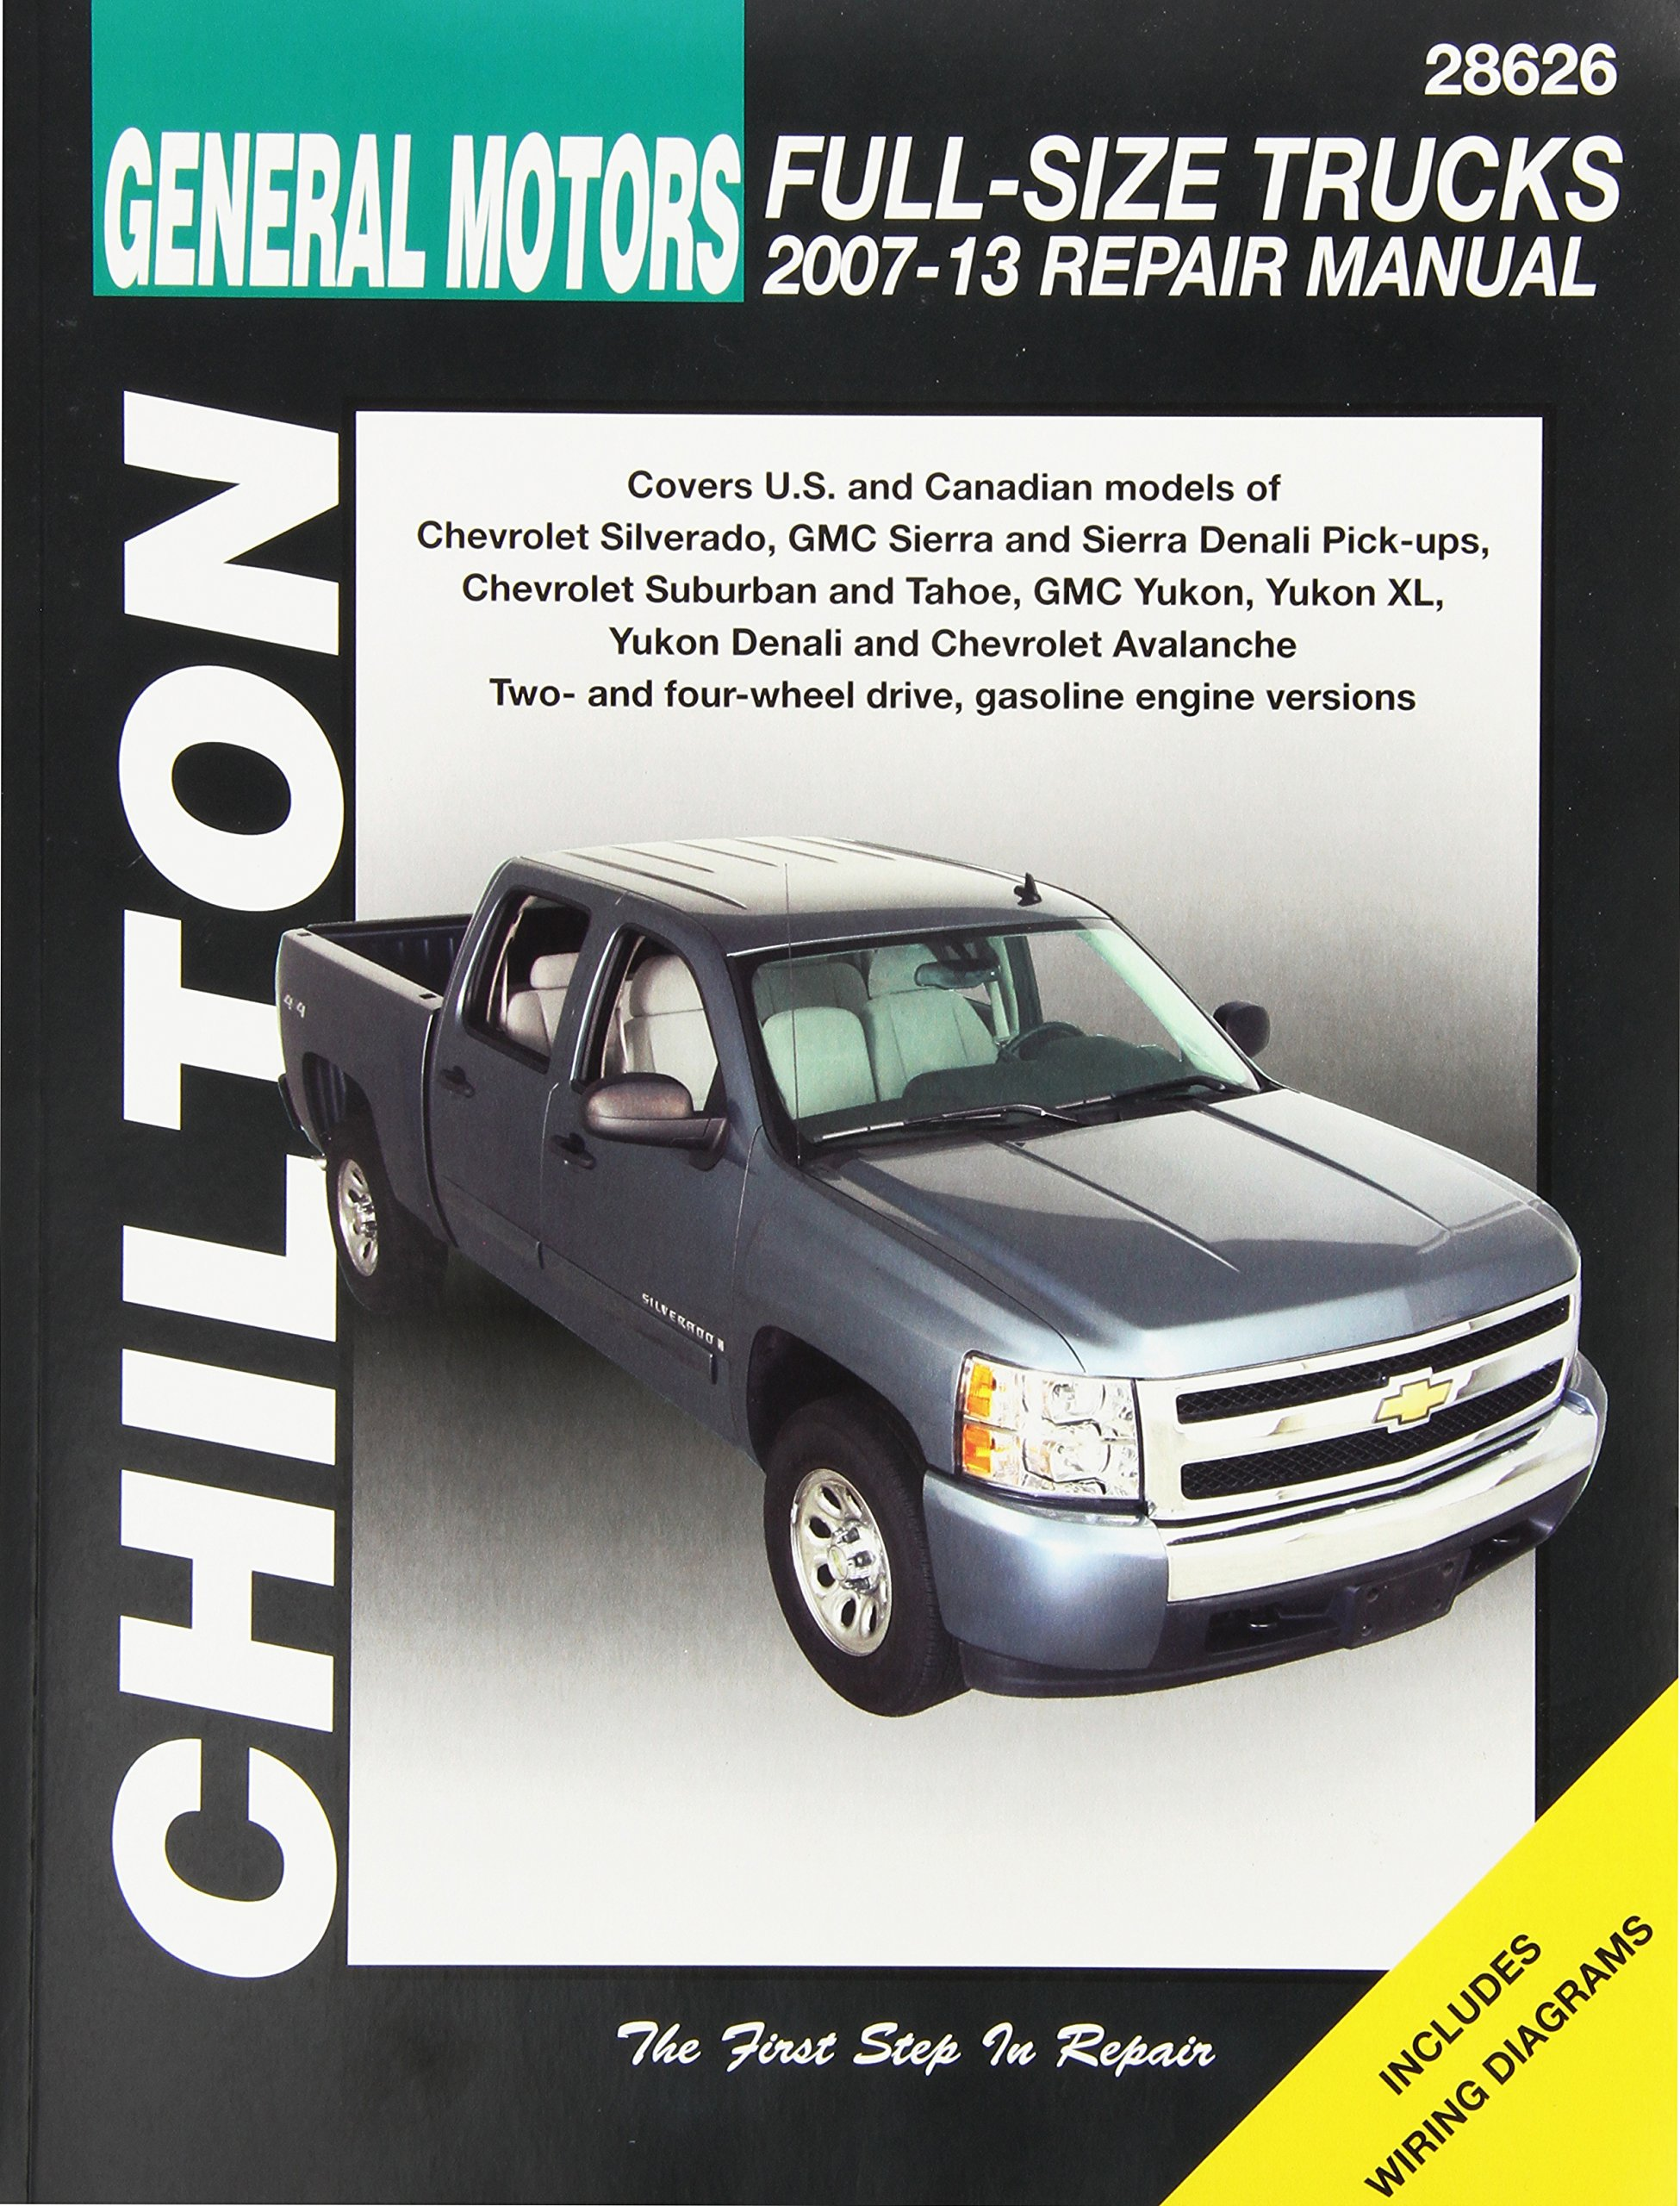 2001 silverado service manual ebook rh 2001 silverado service manual ebook mollysmenu us